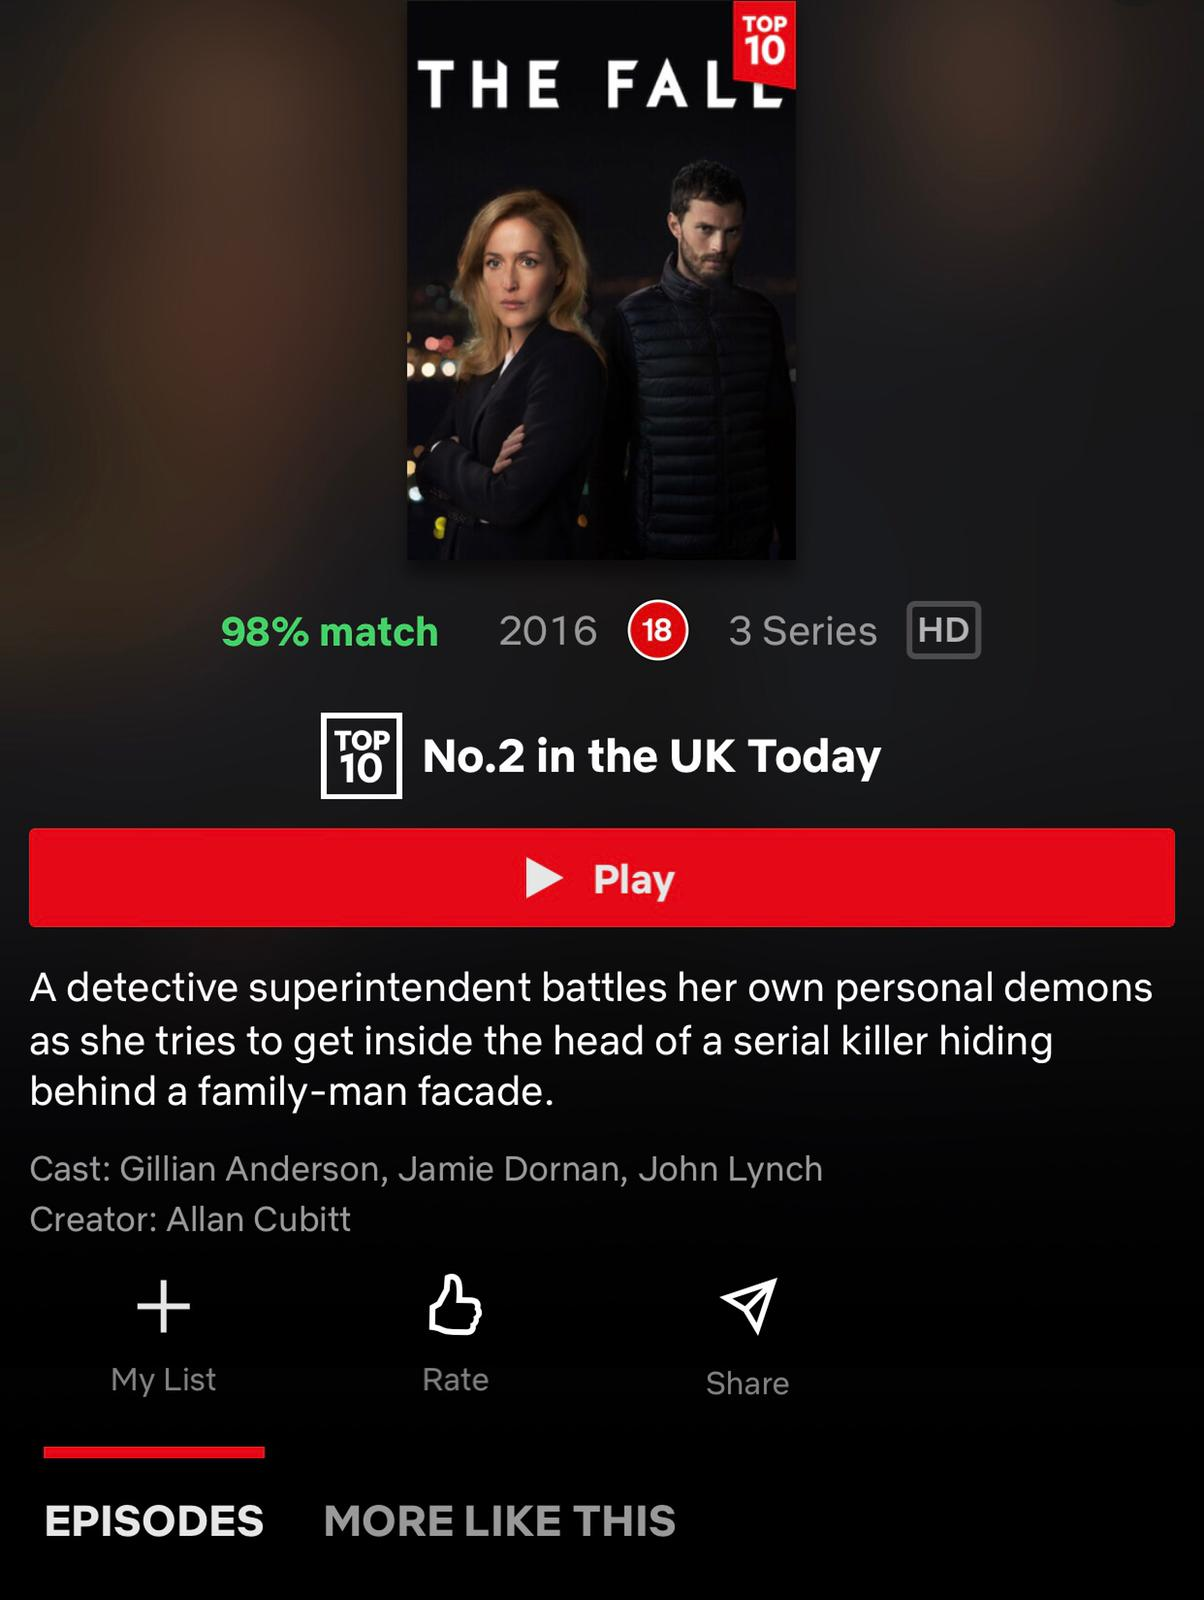 The Fall on NETFLIX  - September 8th, 2020